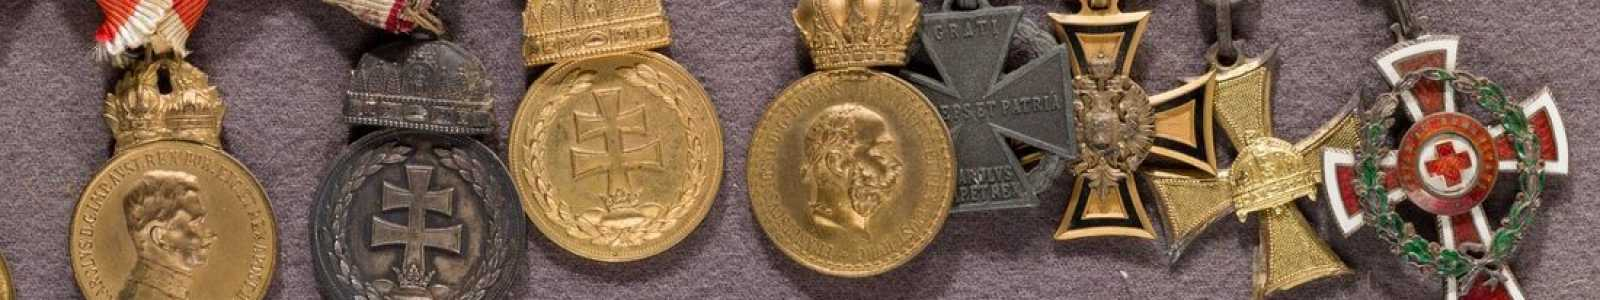 A82m - International medals & military history collectibles